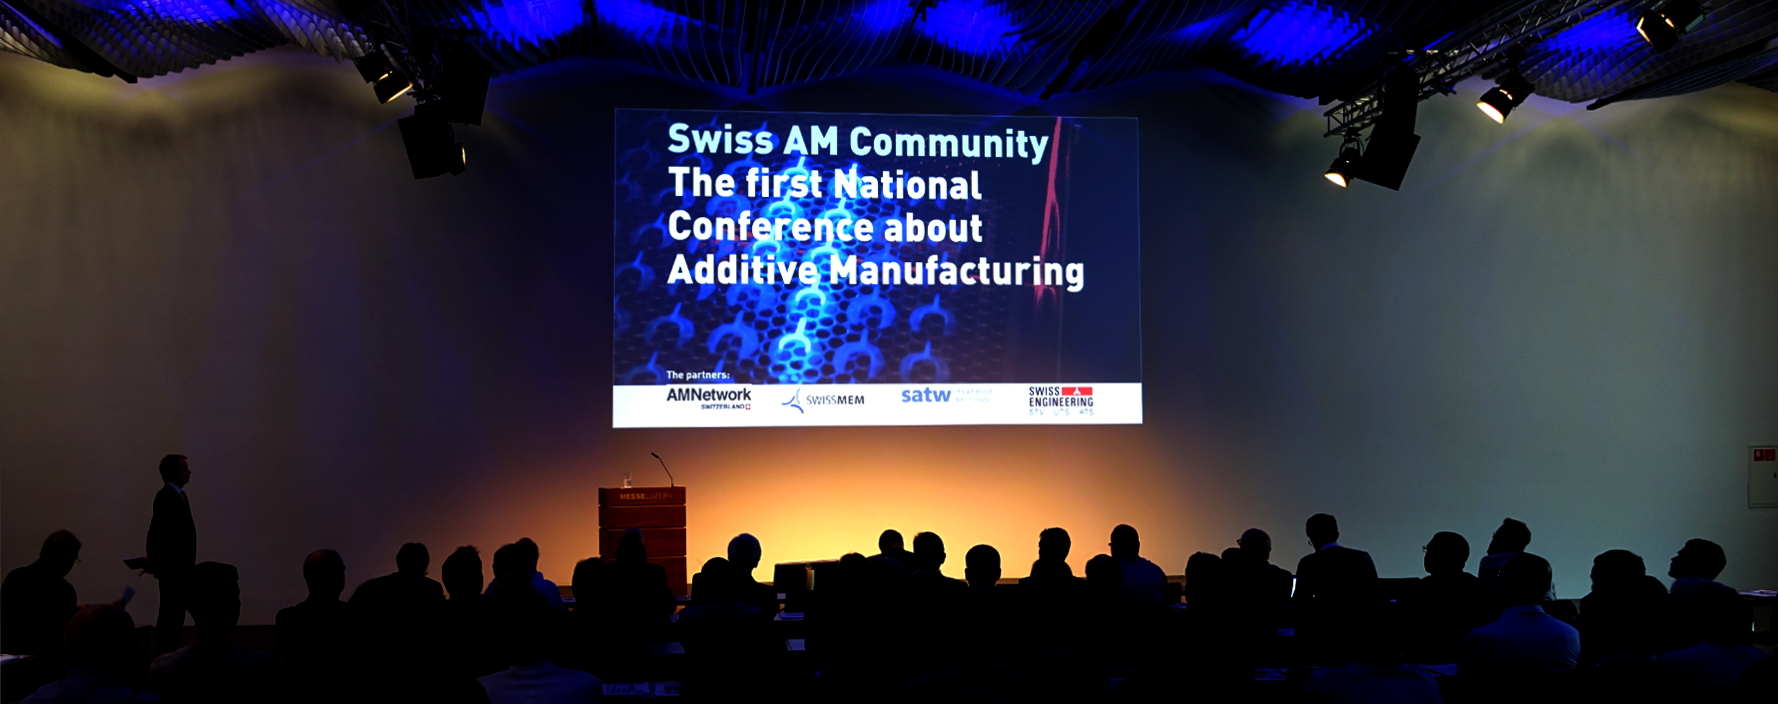 Erste nationale Konferenz Additive Manufacturing Schweiz